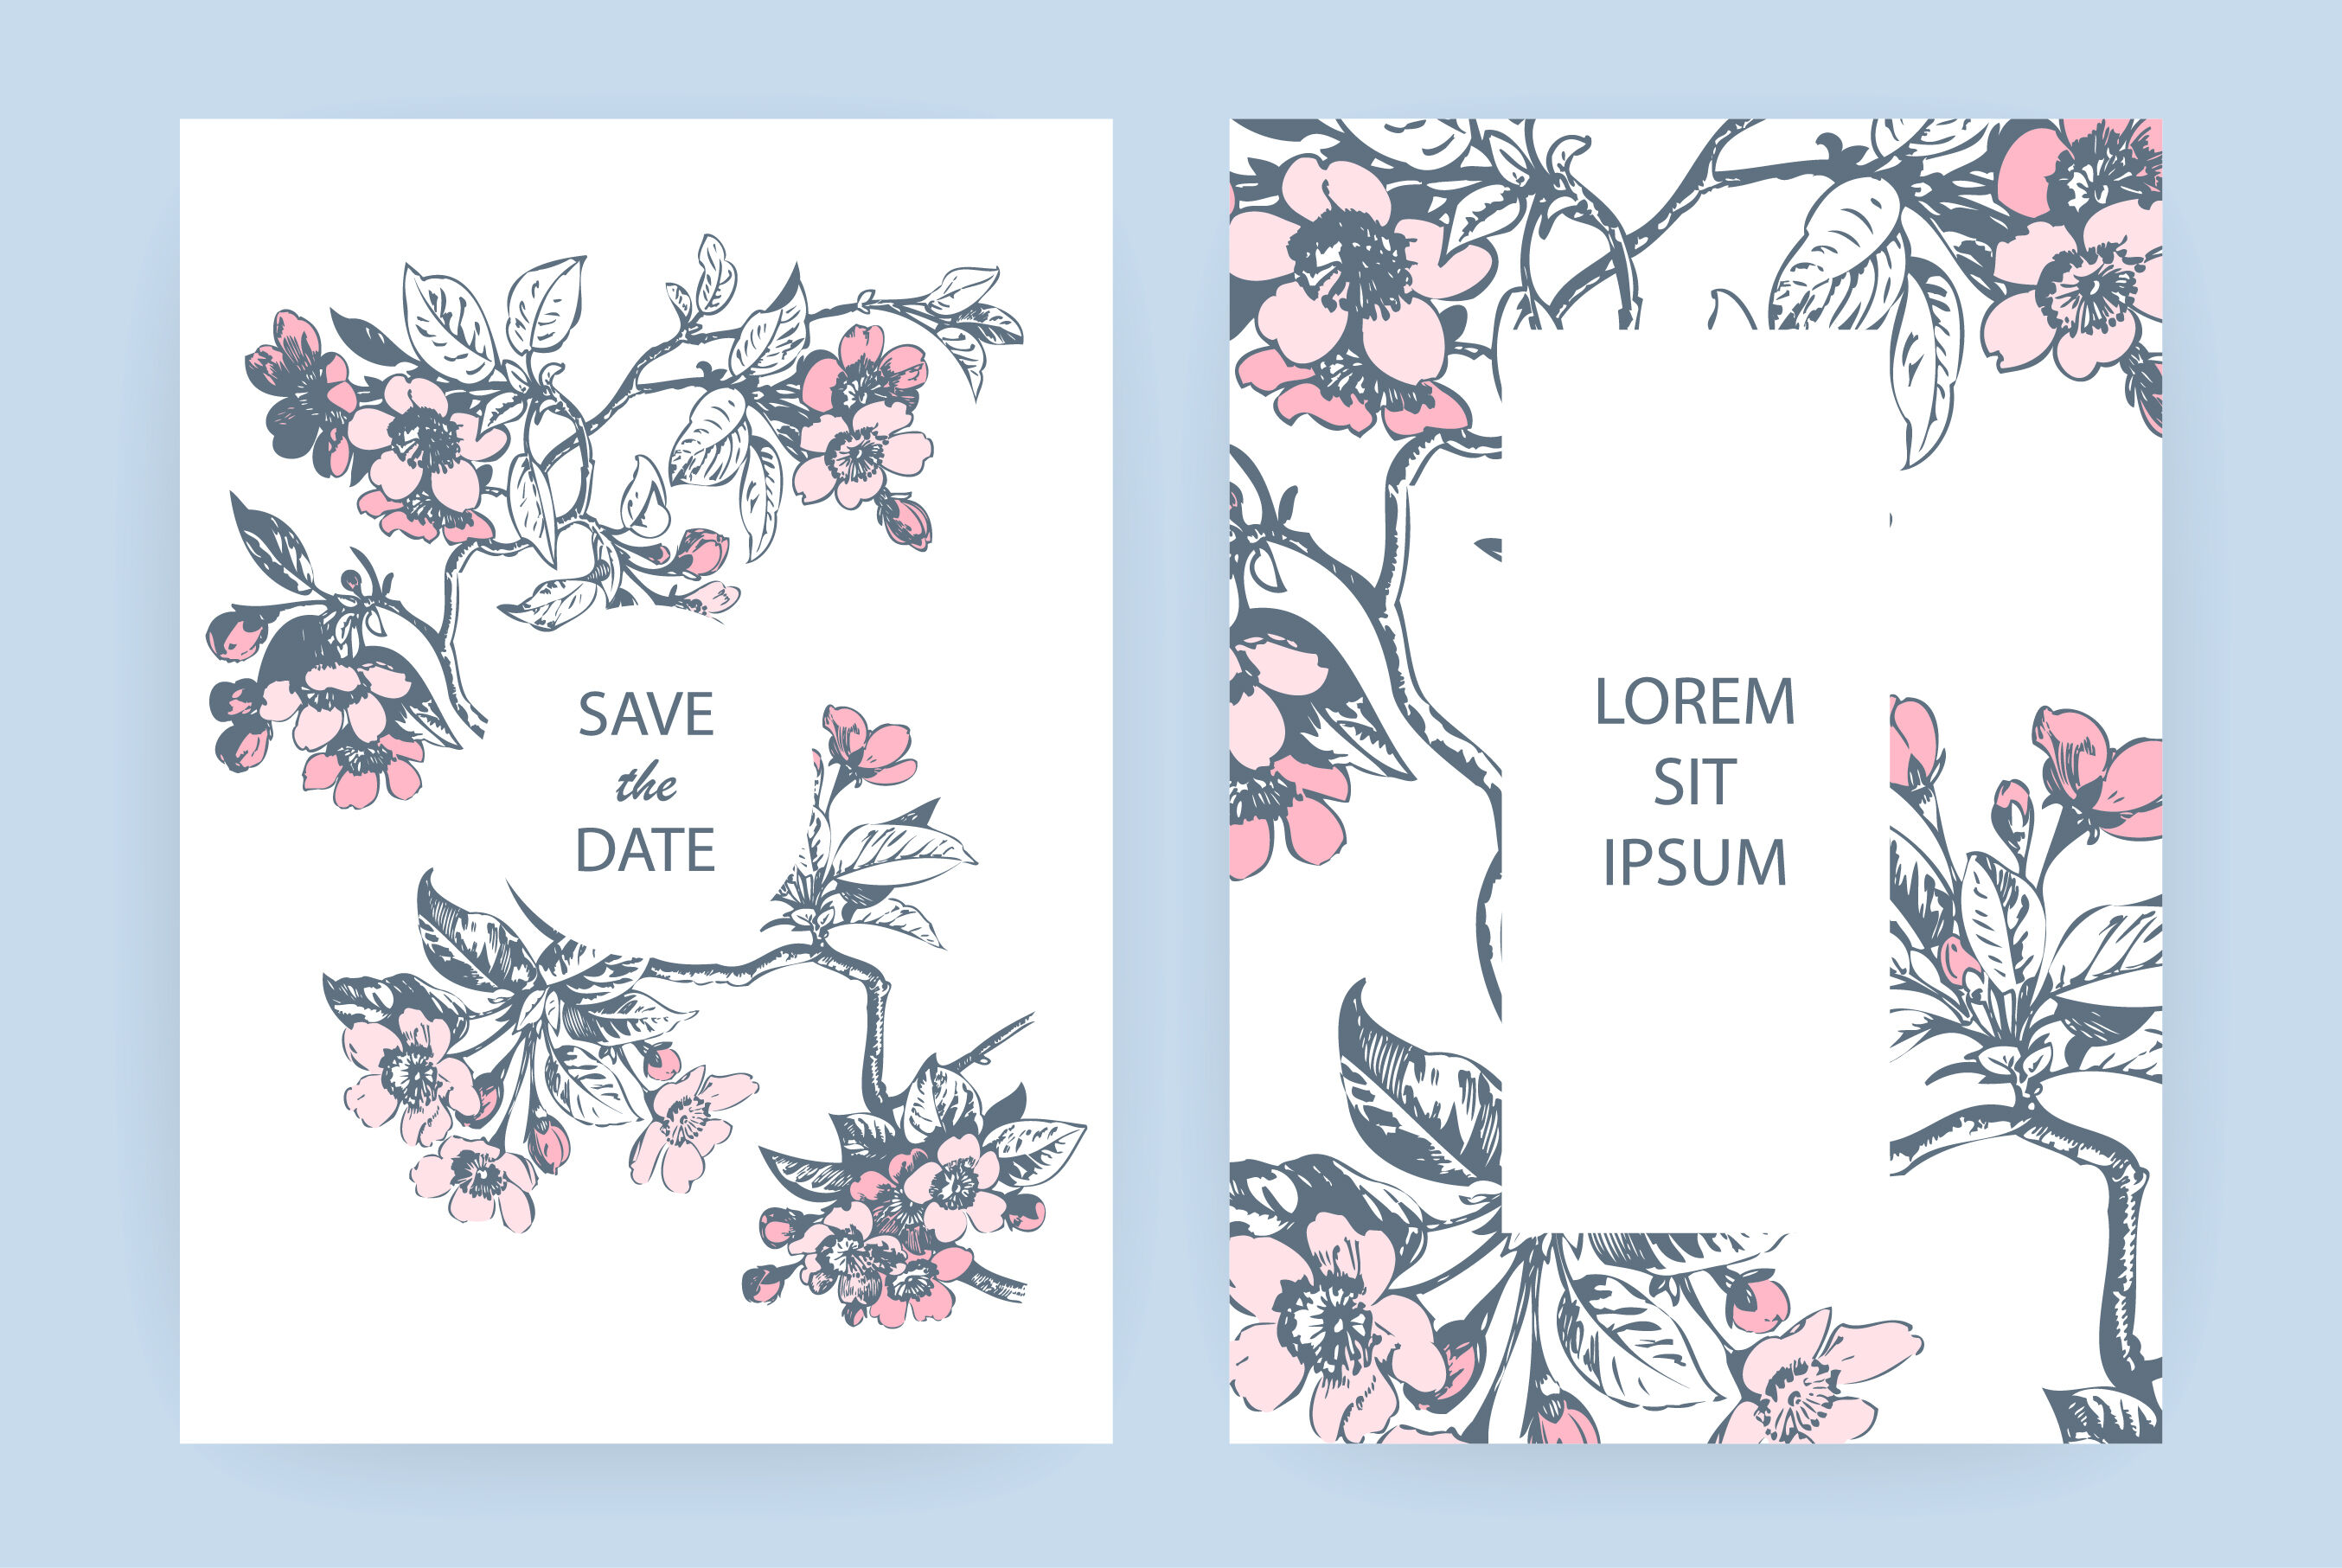 Hand Drawn Sakura Pink Blossom Flowers And Leaves On Branches On